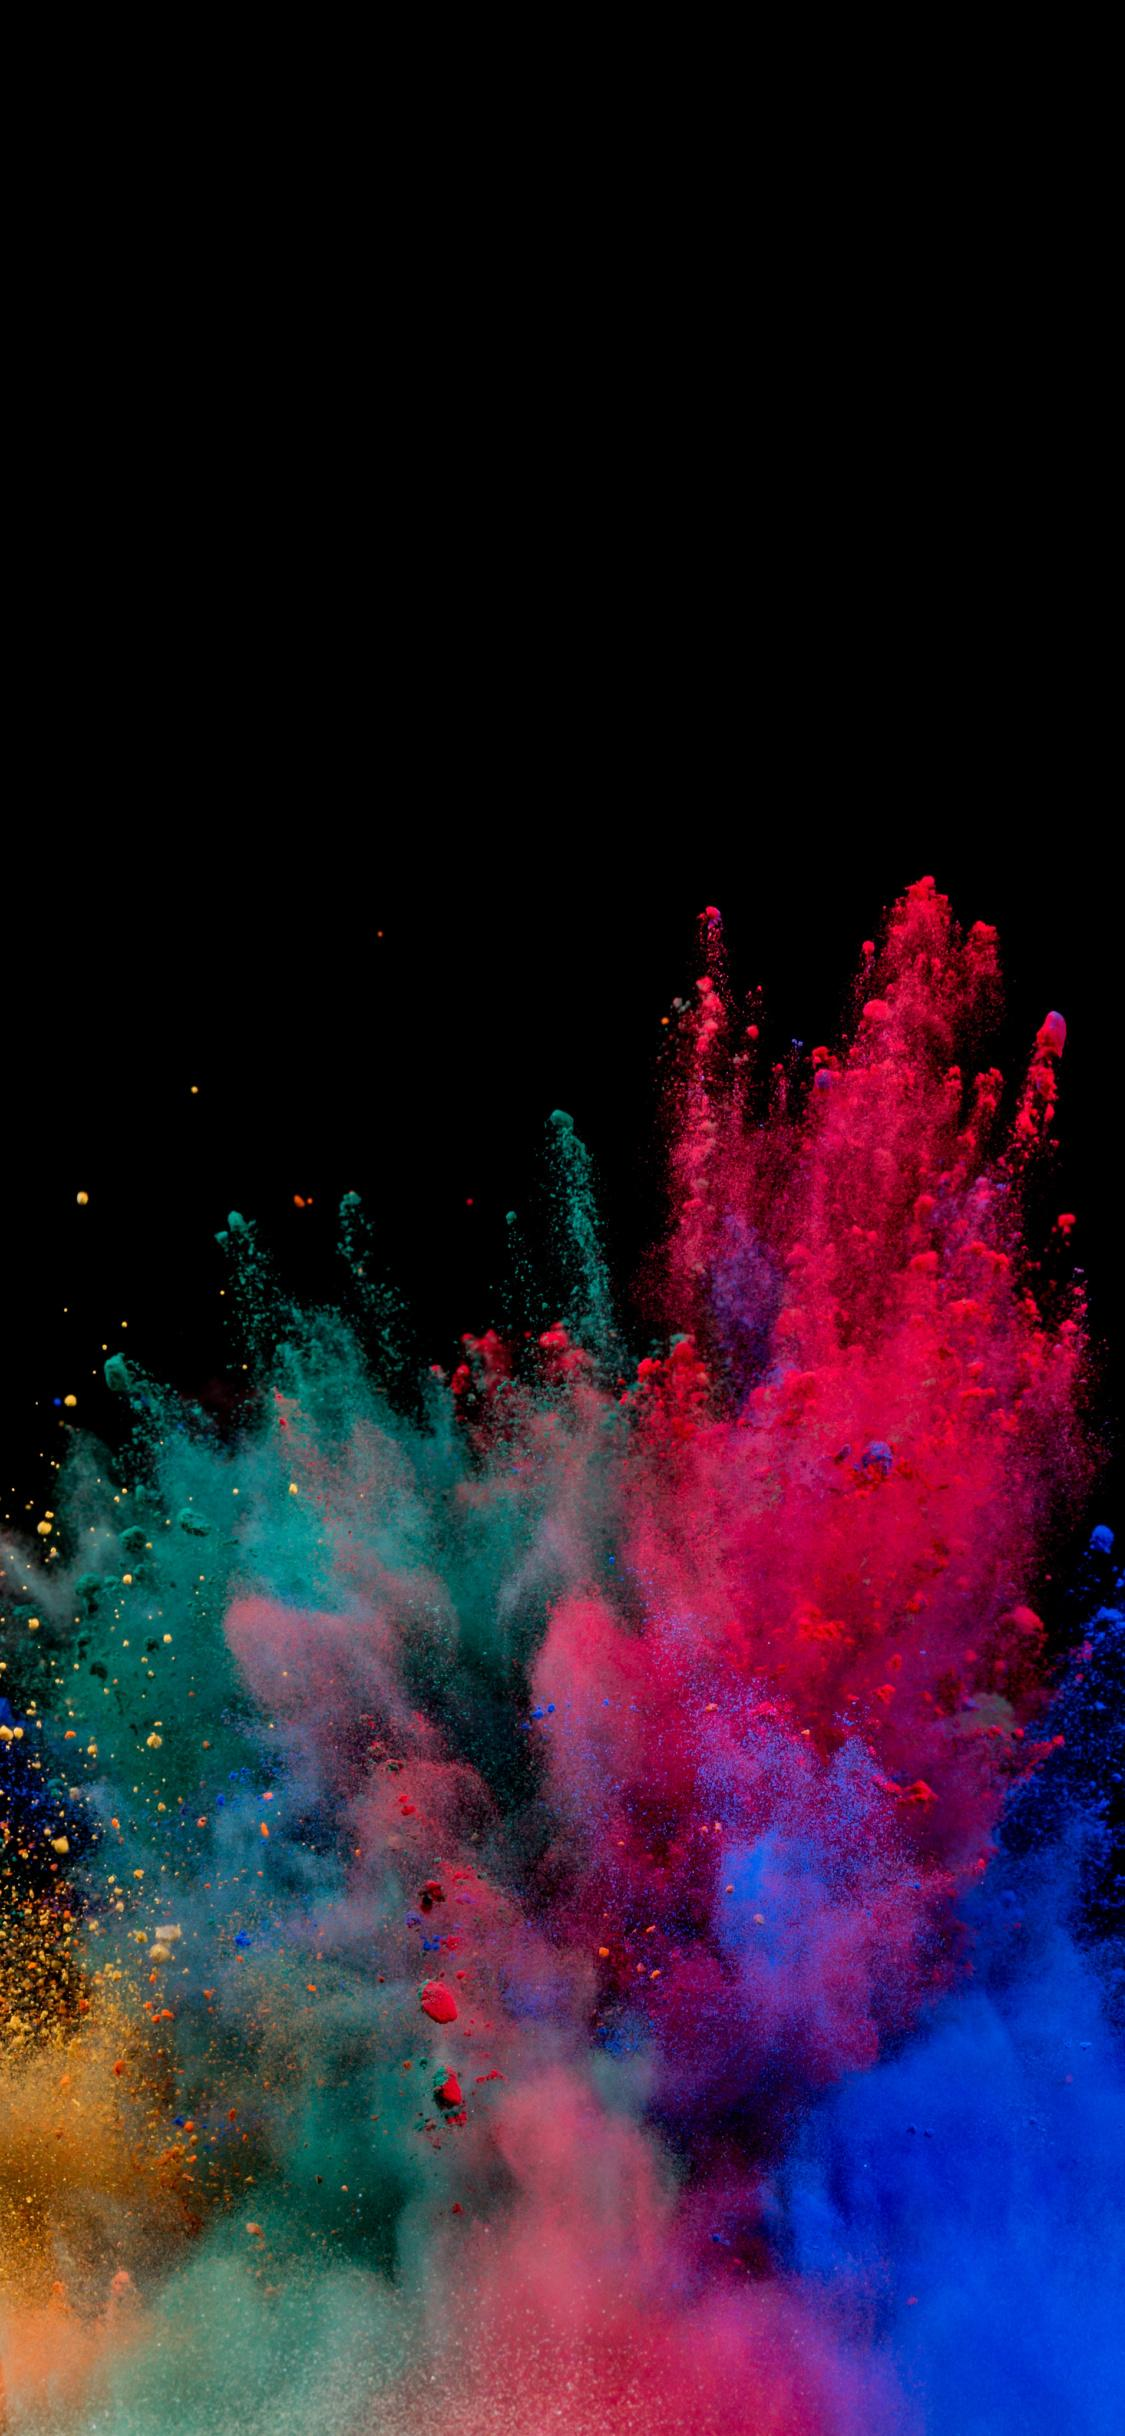 Download 1125x2436 wallpapers colors, blast, explosion, colorful